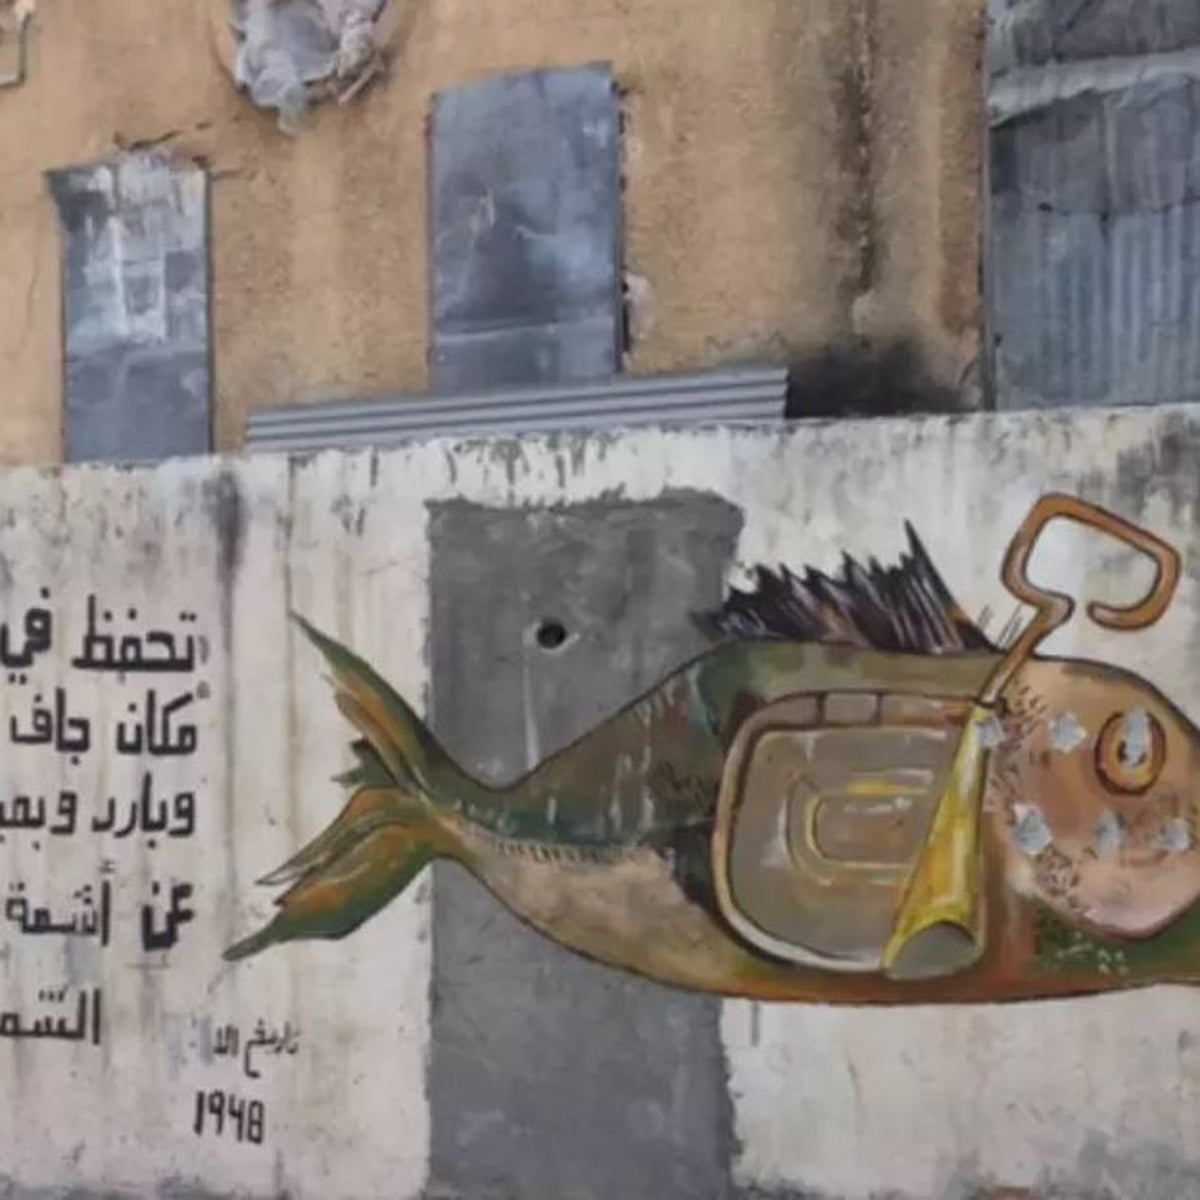 Alaa Albaba's graffiti, in Ajami, Jaffa: 'Keep in a cold and dry place'